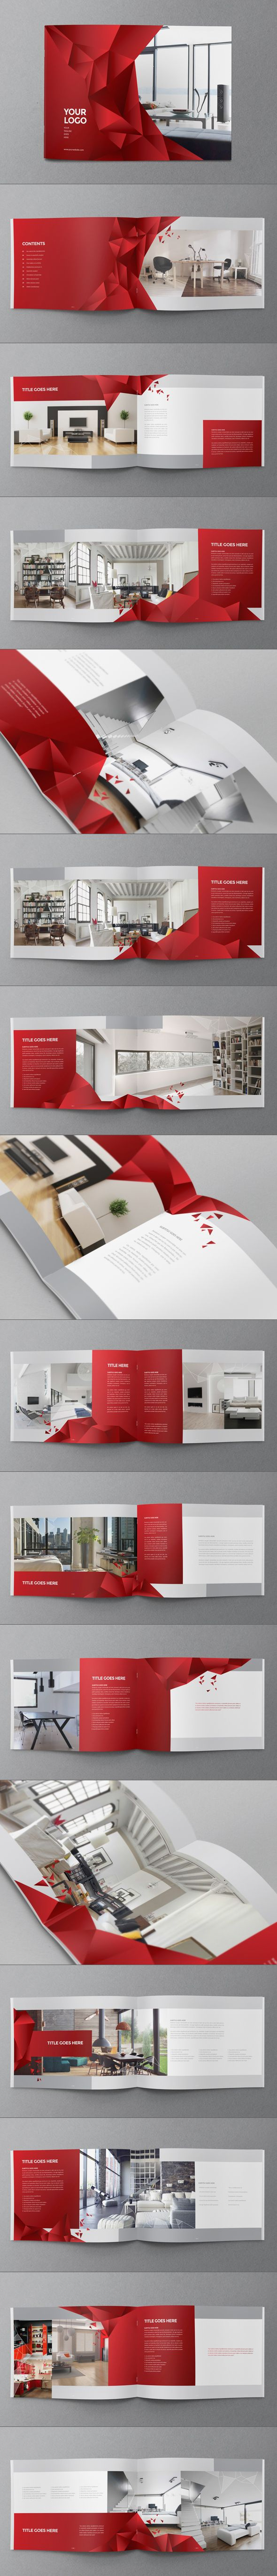 Interior Design Brochure. Download here: http://graphicriver.net/item/interior-design-brochure/6913774?ref=abradesign #design #brochure